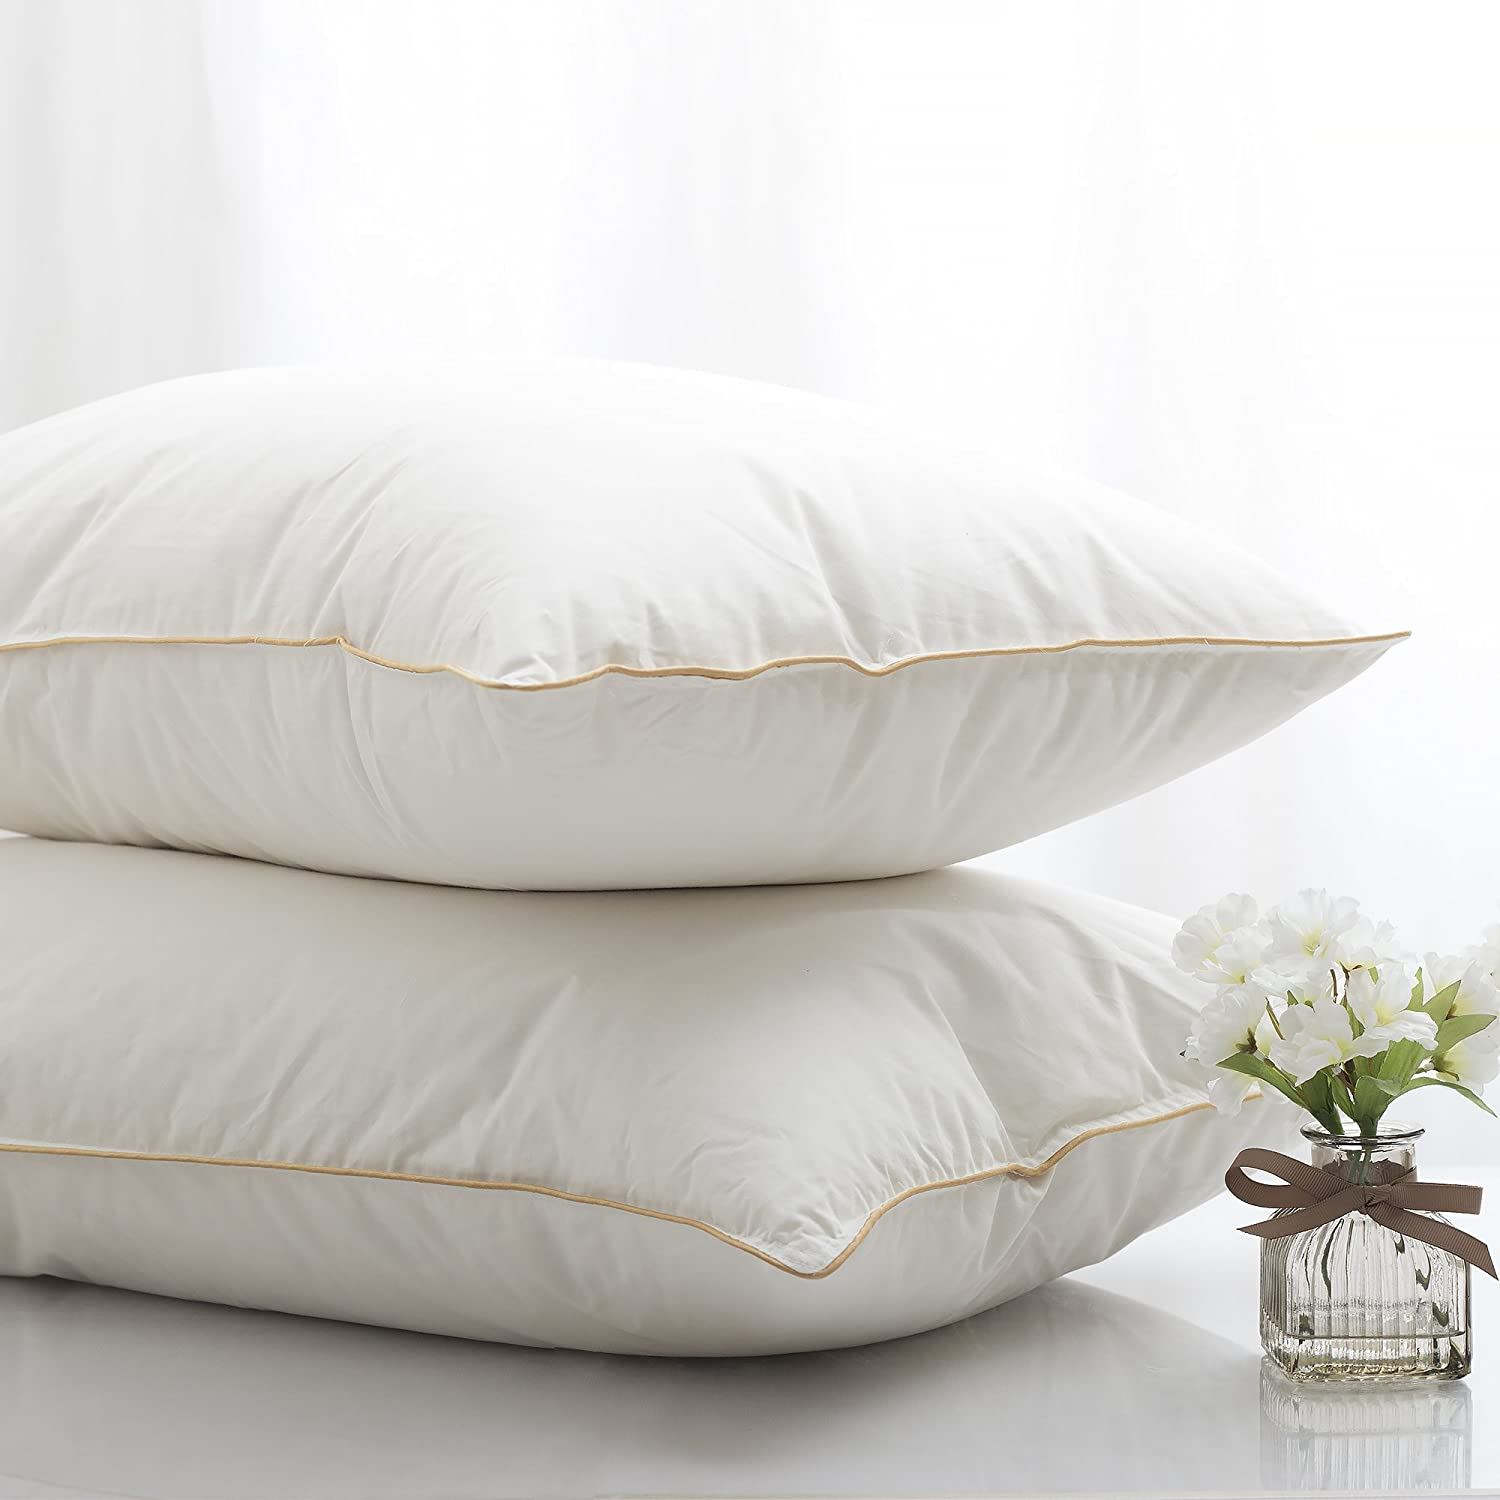 home soft great extra pillow bed amazon standard stomach very com down kitchen duck sleepers flat for pillows dp